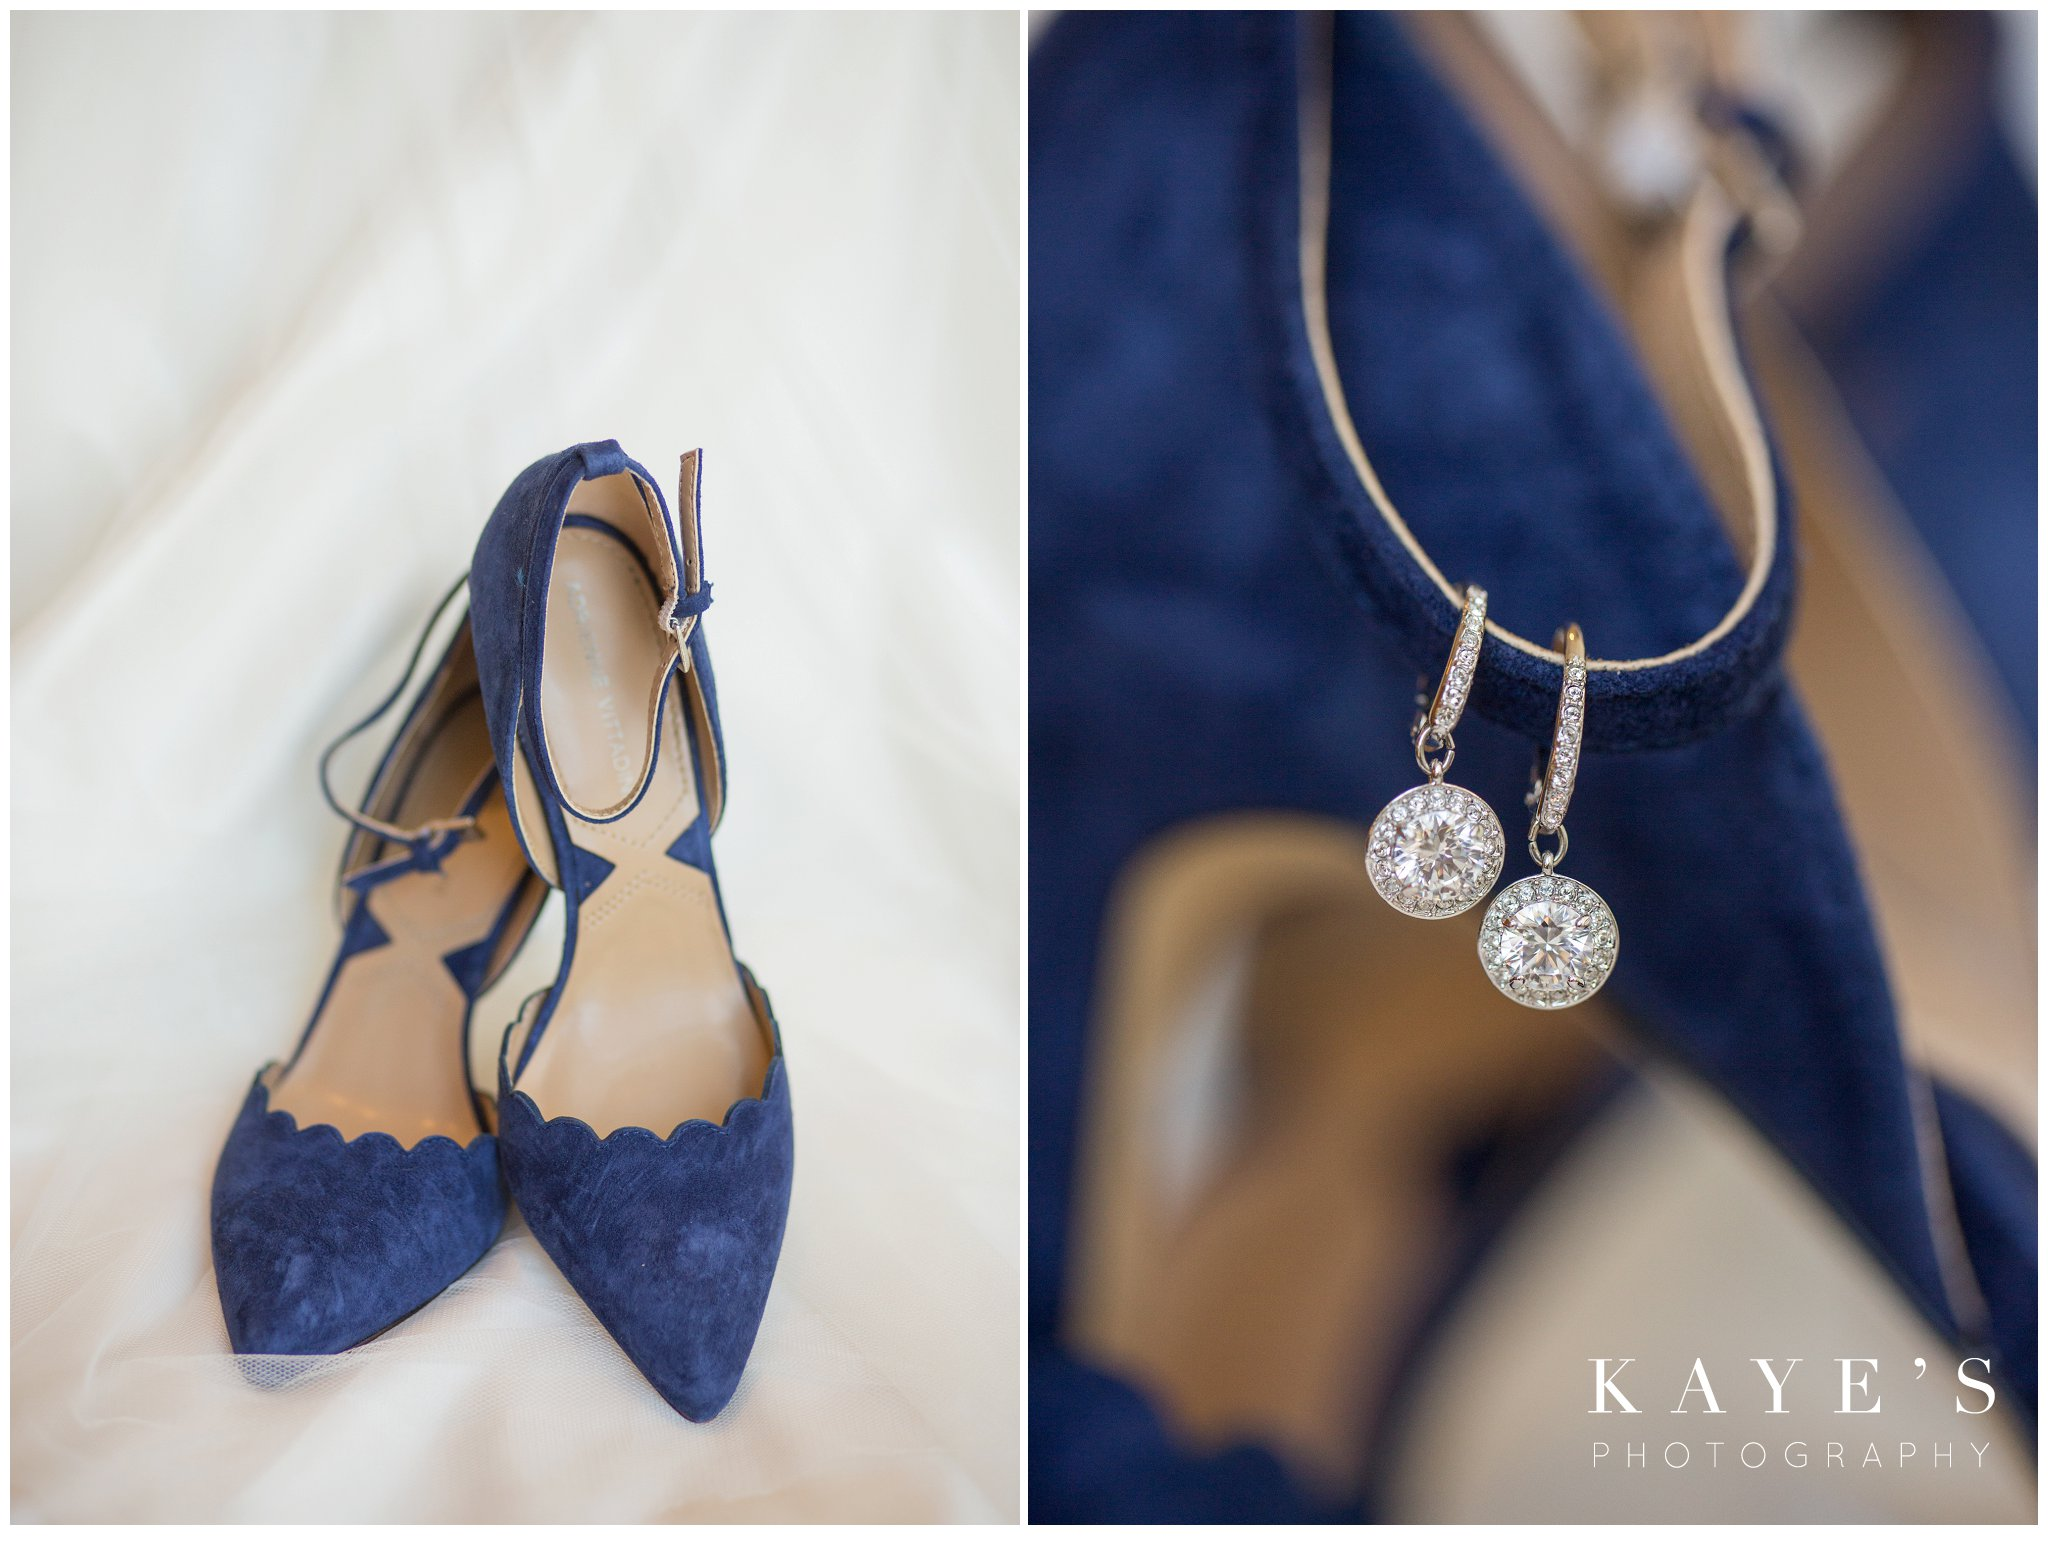 blue bridal shoes on white dress in plymouth michigan during wedding ceremony